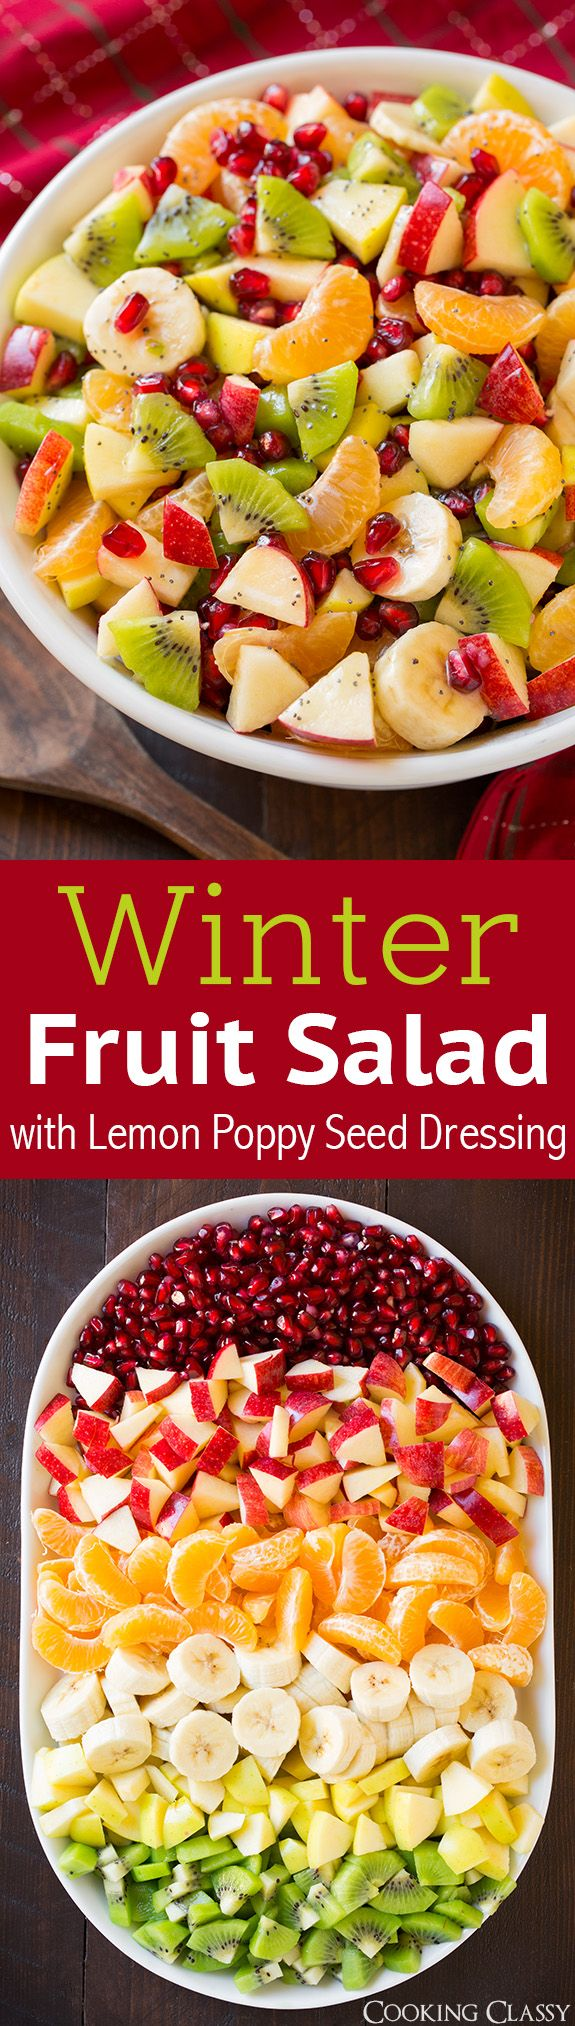 Winter Fruit Salad with Lemon Poppy Seed Dressing – SO GOOD! Perfect colors for the holidays. Everyone loved it!